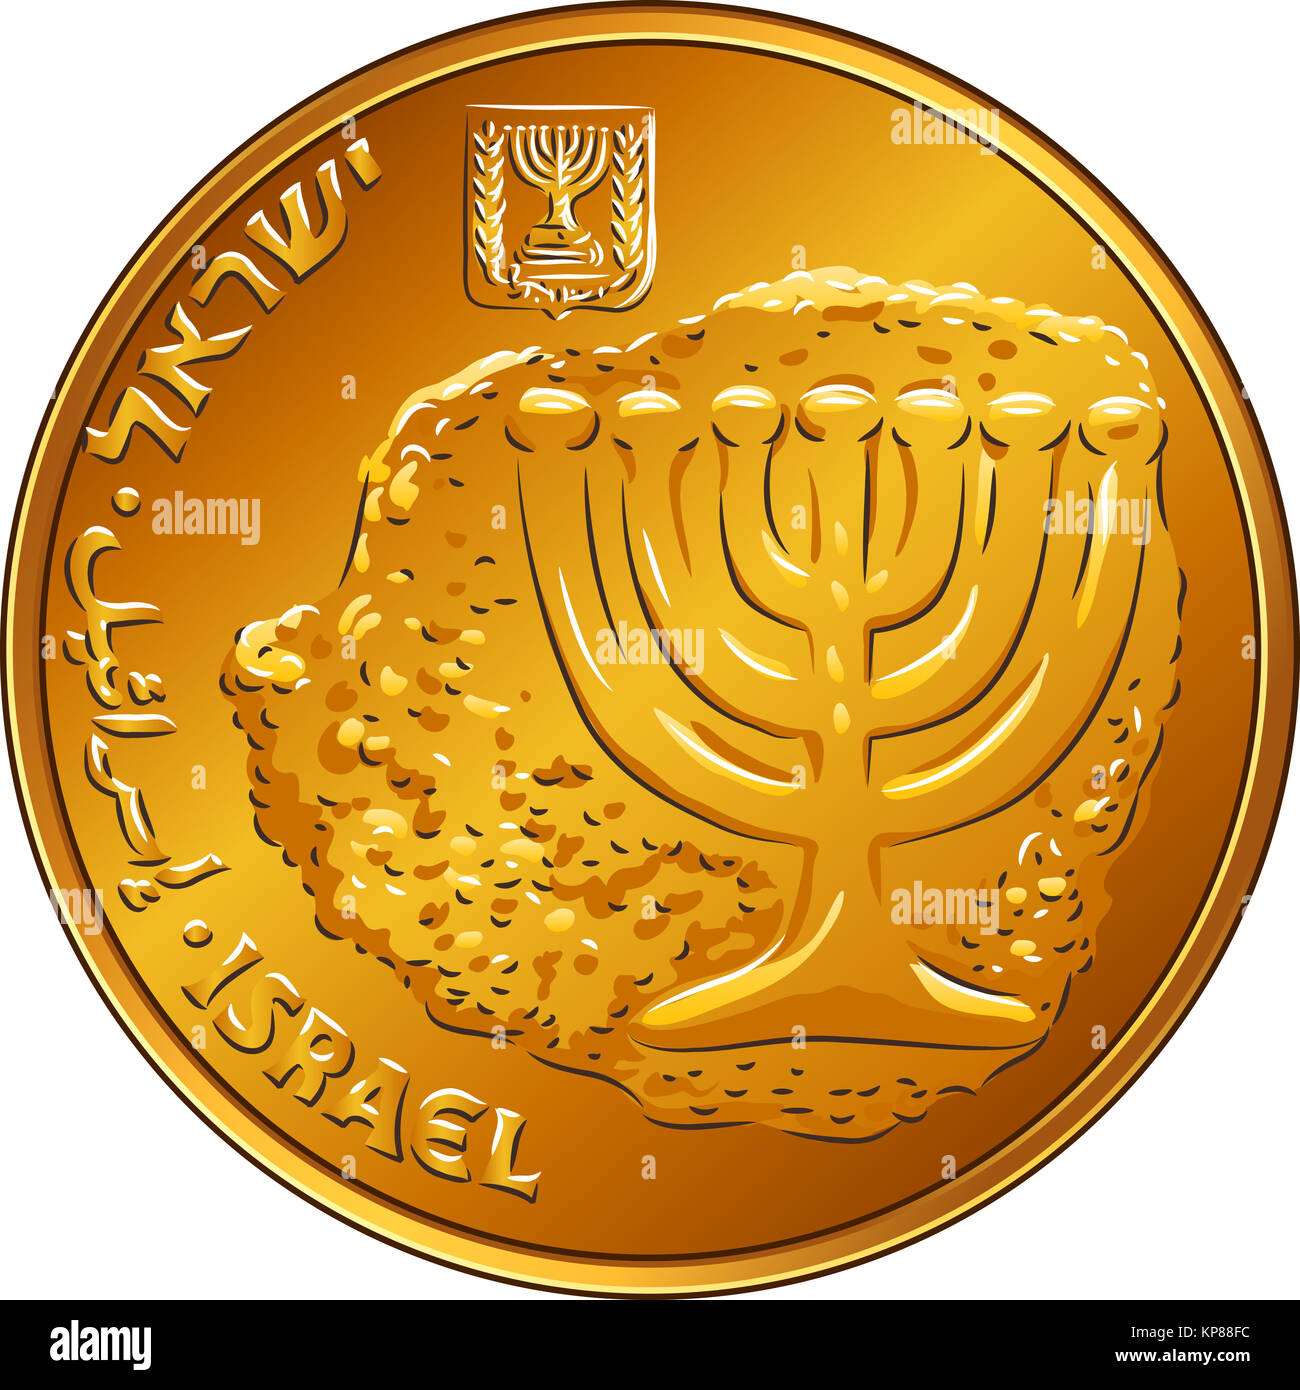 Shekel Coin Gold Stock Photos Shekel Coin Gold Stock Images Alamy